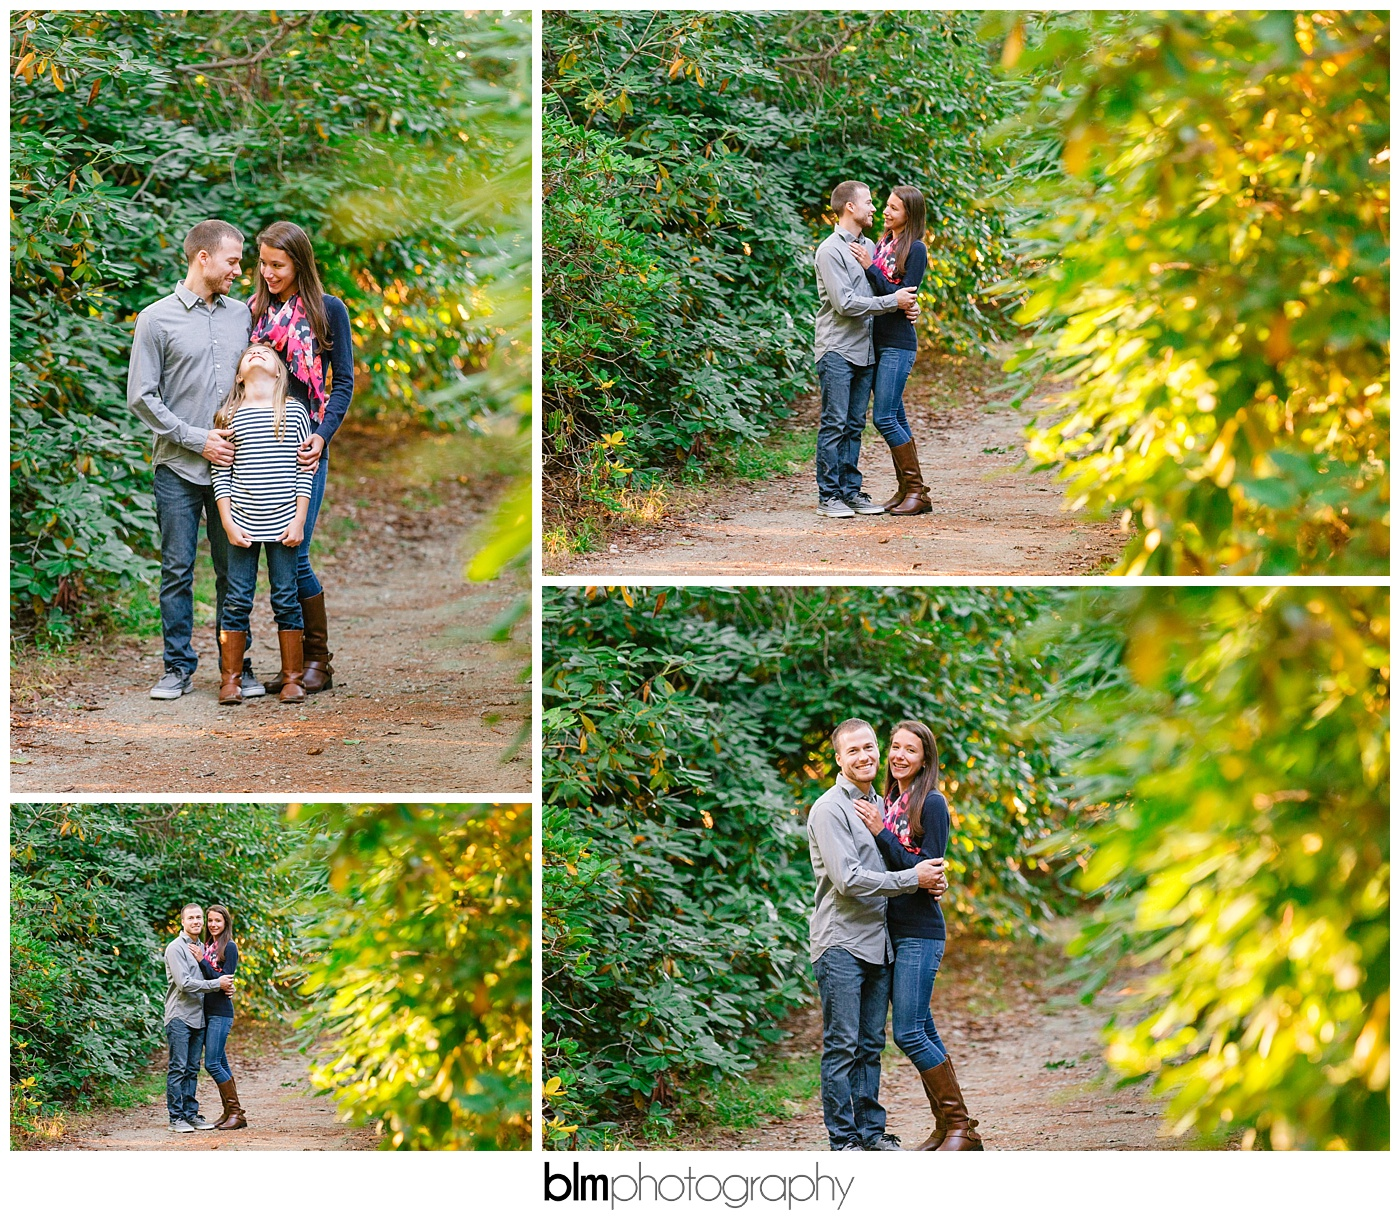 BLM,Brianna Morrissey,Brie Morrissey,Callie,Engagment Photos,Kirwan MacMillan,Maudslay State Park,Nathalie Morse,Nathalie-Kirwan_Engagement,Oct,October,Photo,Photographer,Photography,www.blmphoto.com/contact,©BLM Photography 2016,